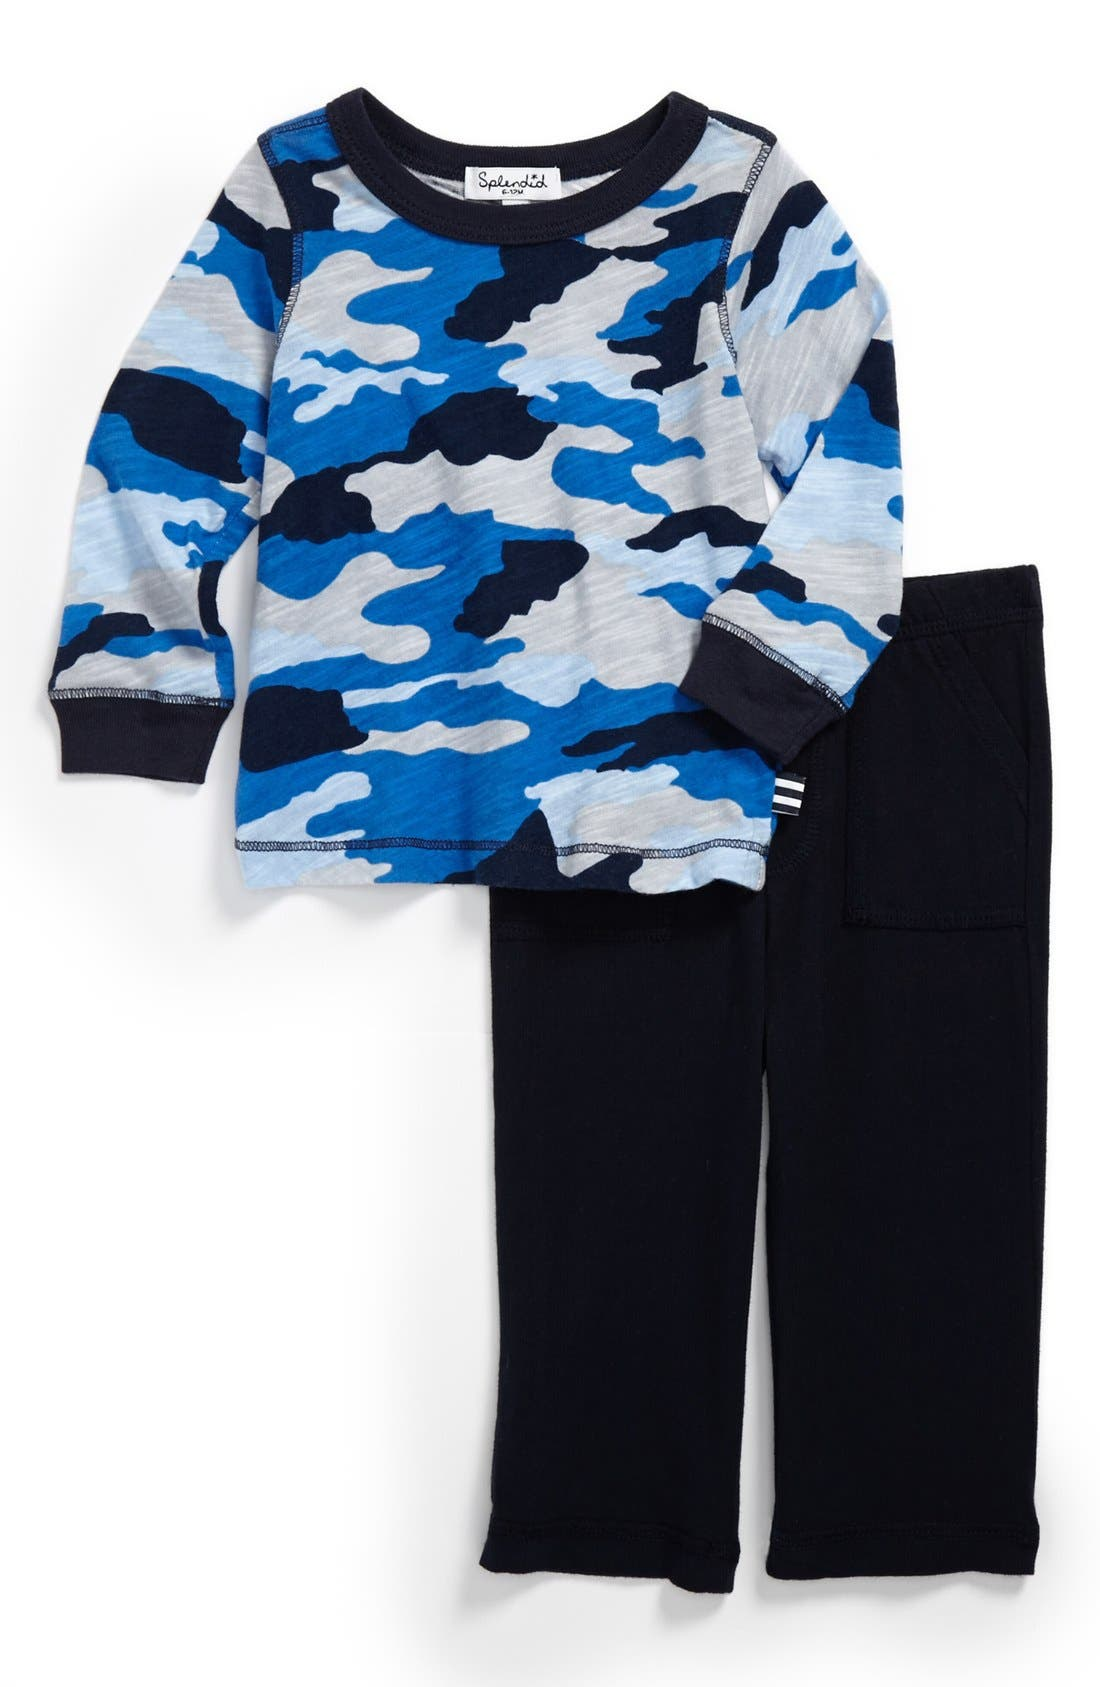 Main Image - Splendid 'Boot Camp Camo' Top & Pants (Baby Boys)